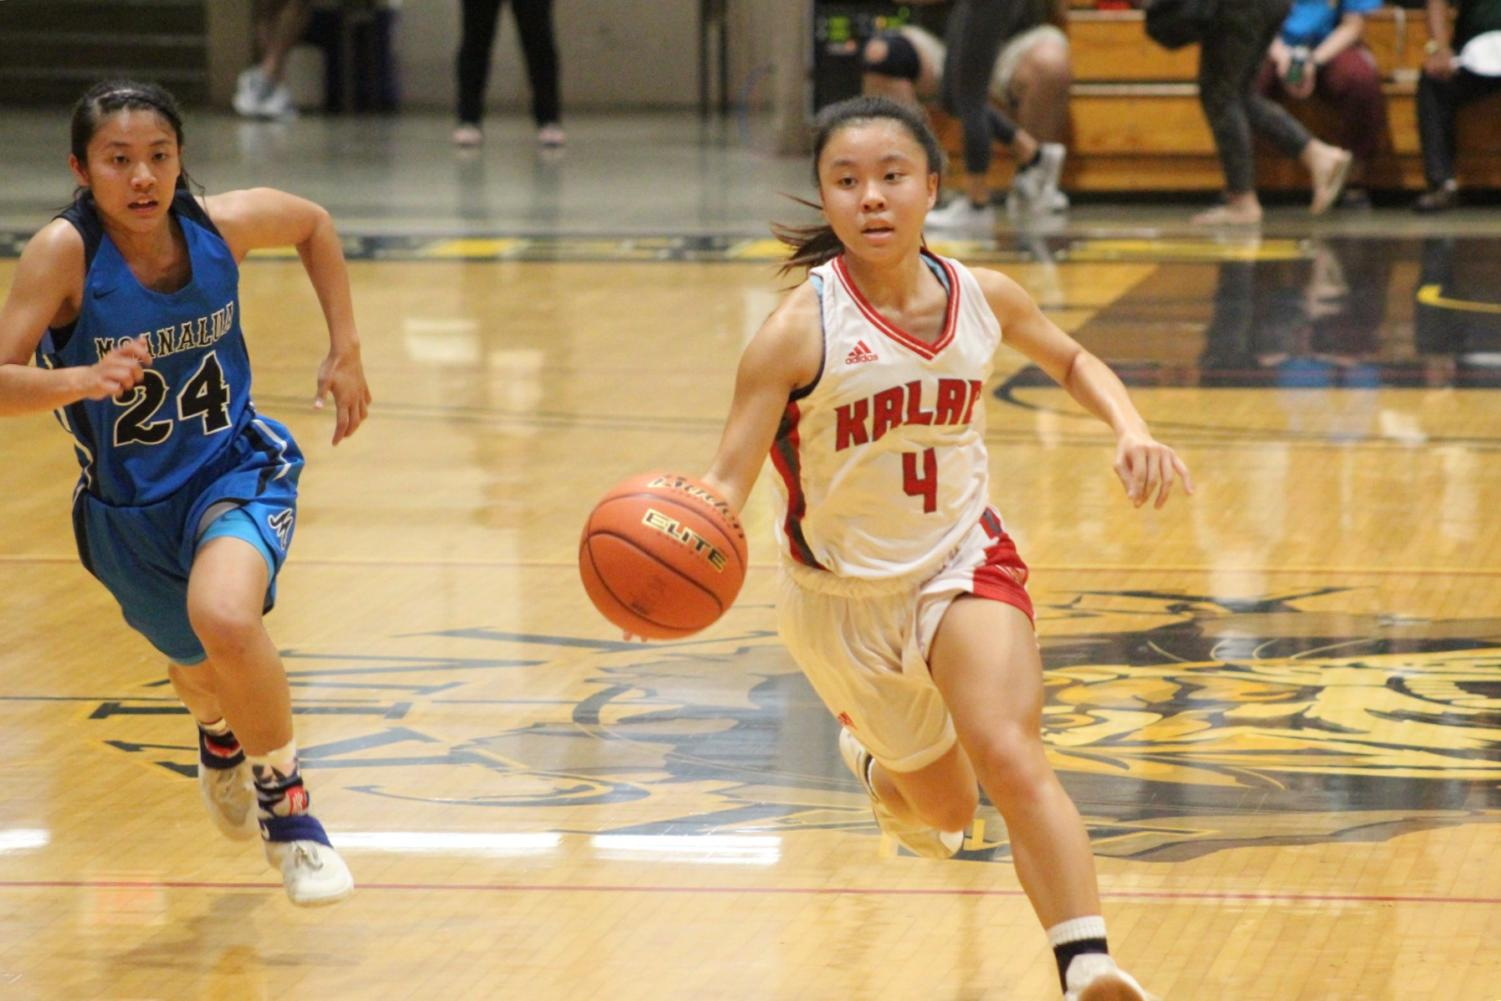 Junior point guard Daesha Viela dribbles down the court. Photo by Noah Tamura 2018.